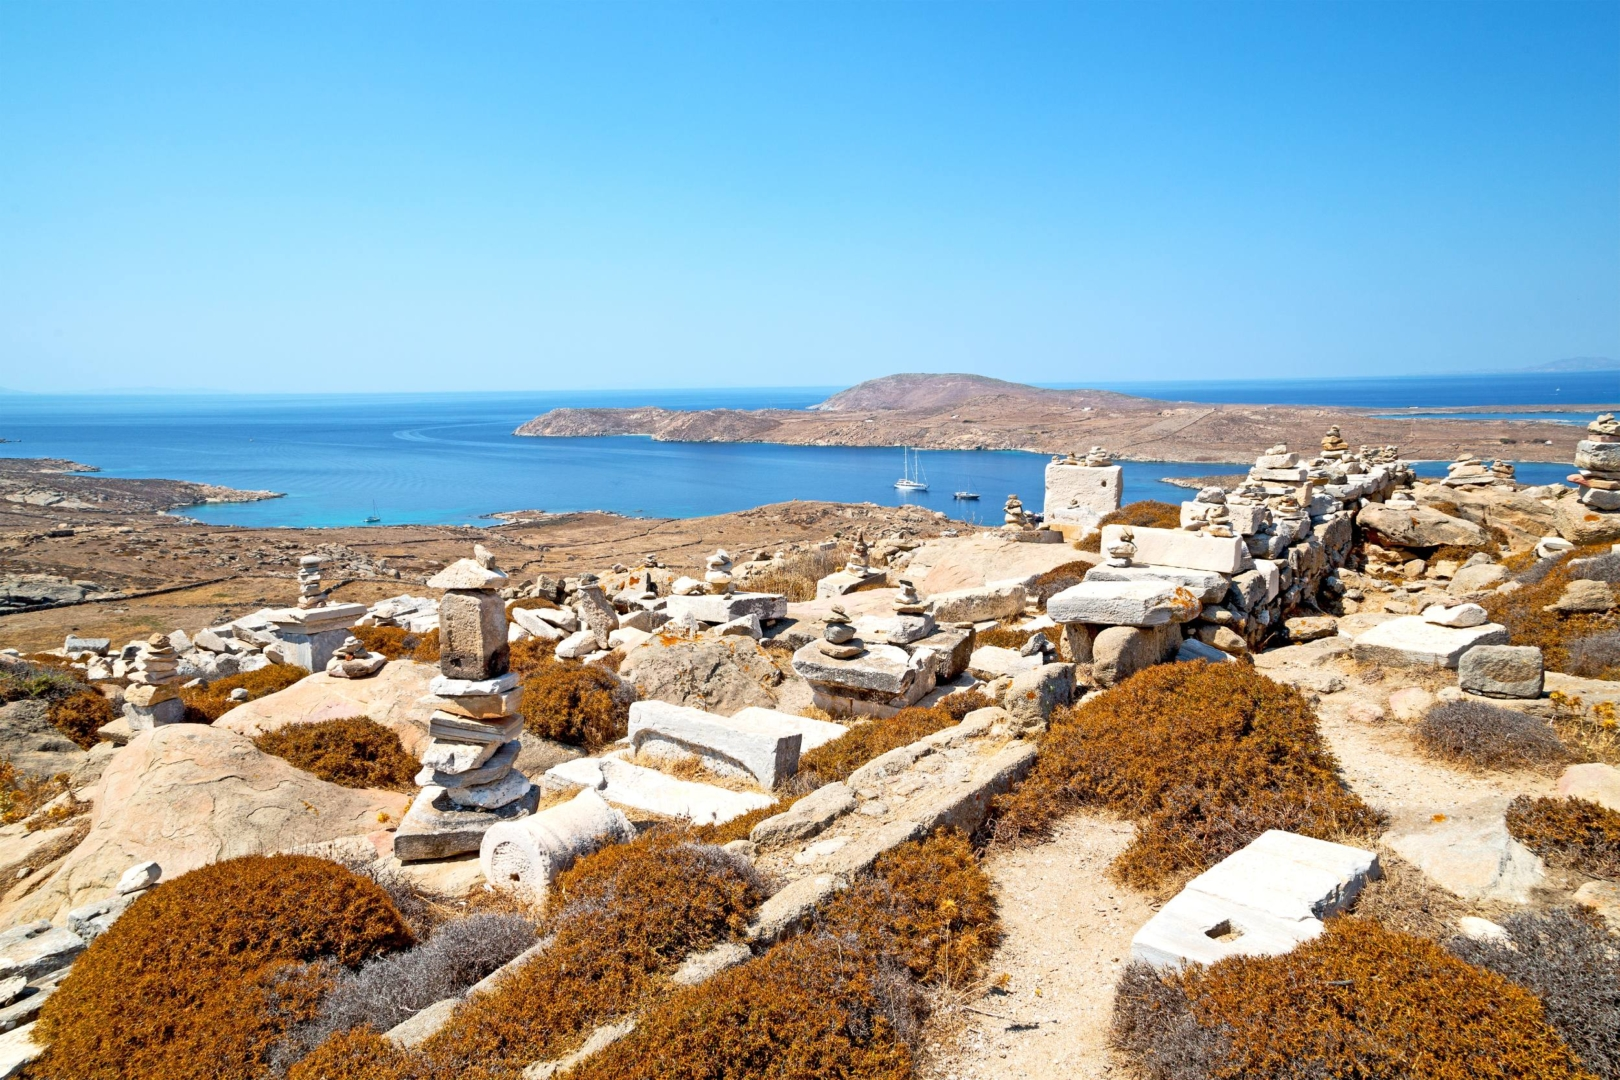 The historical acropolis of Delos and old ruin site